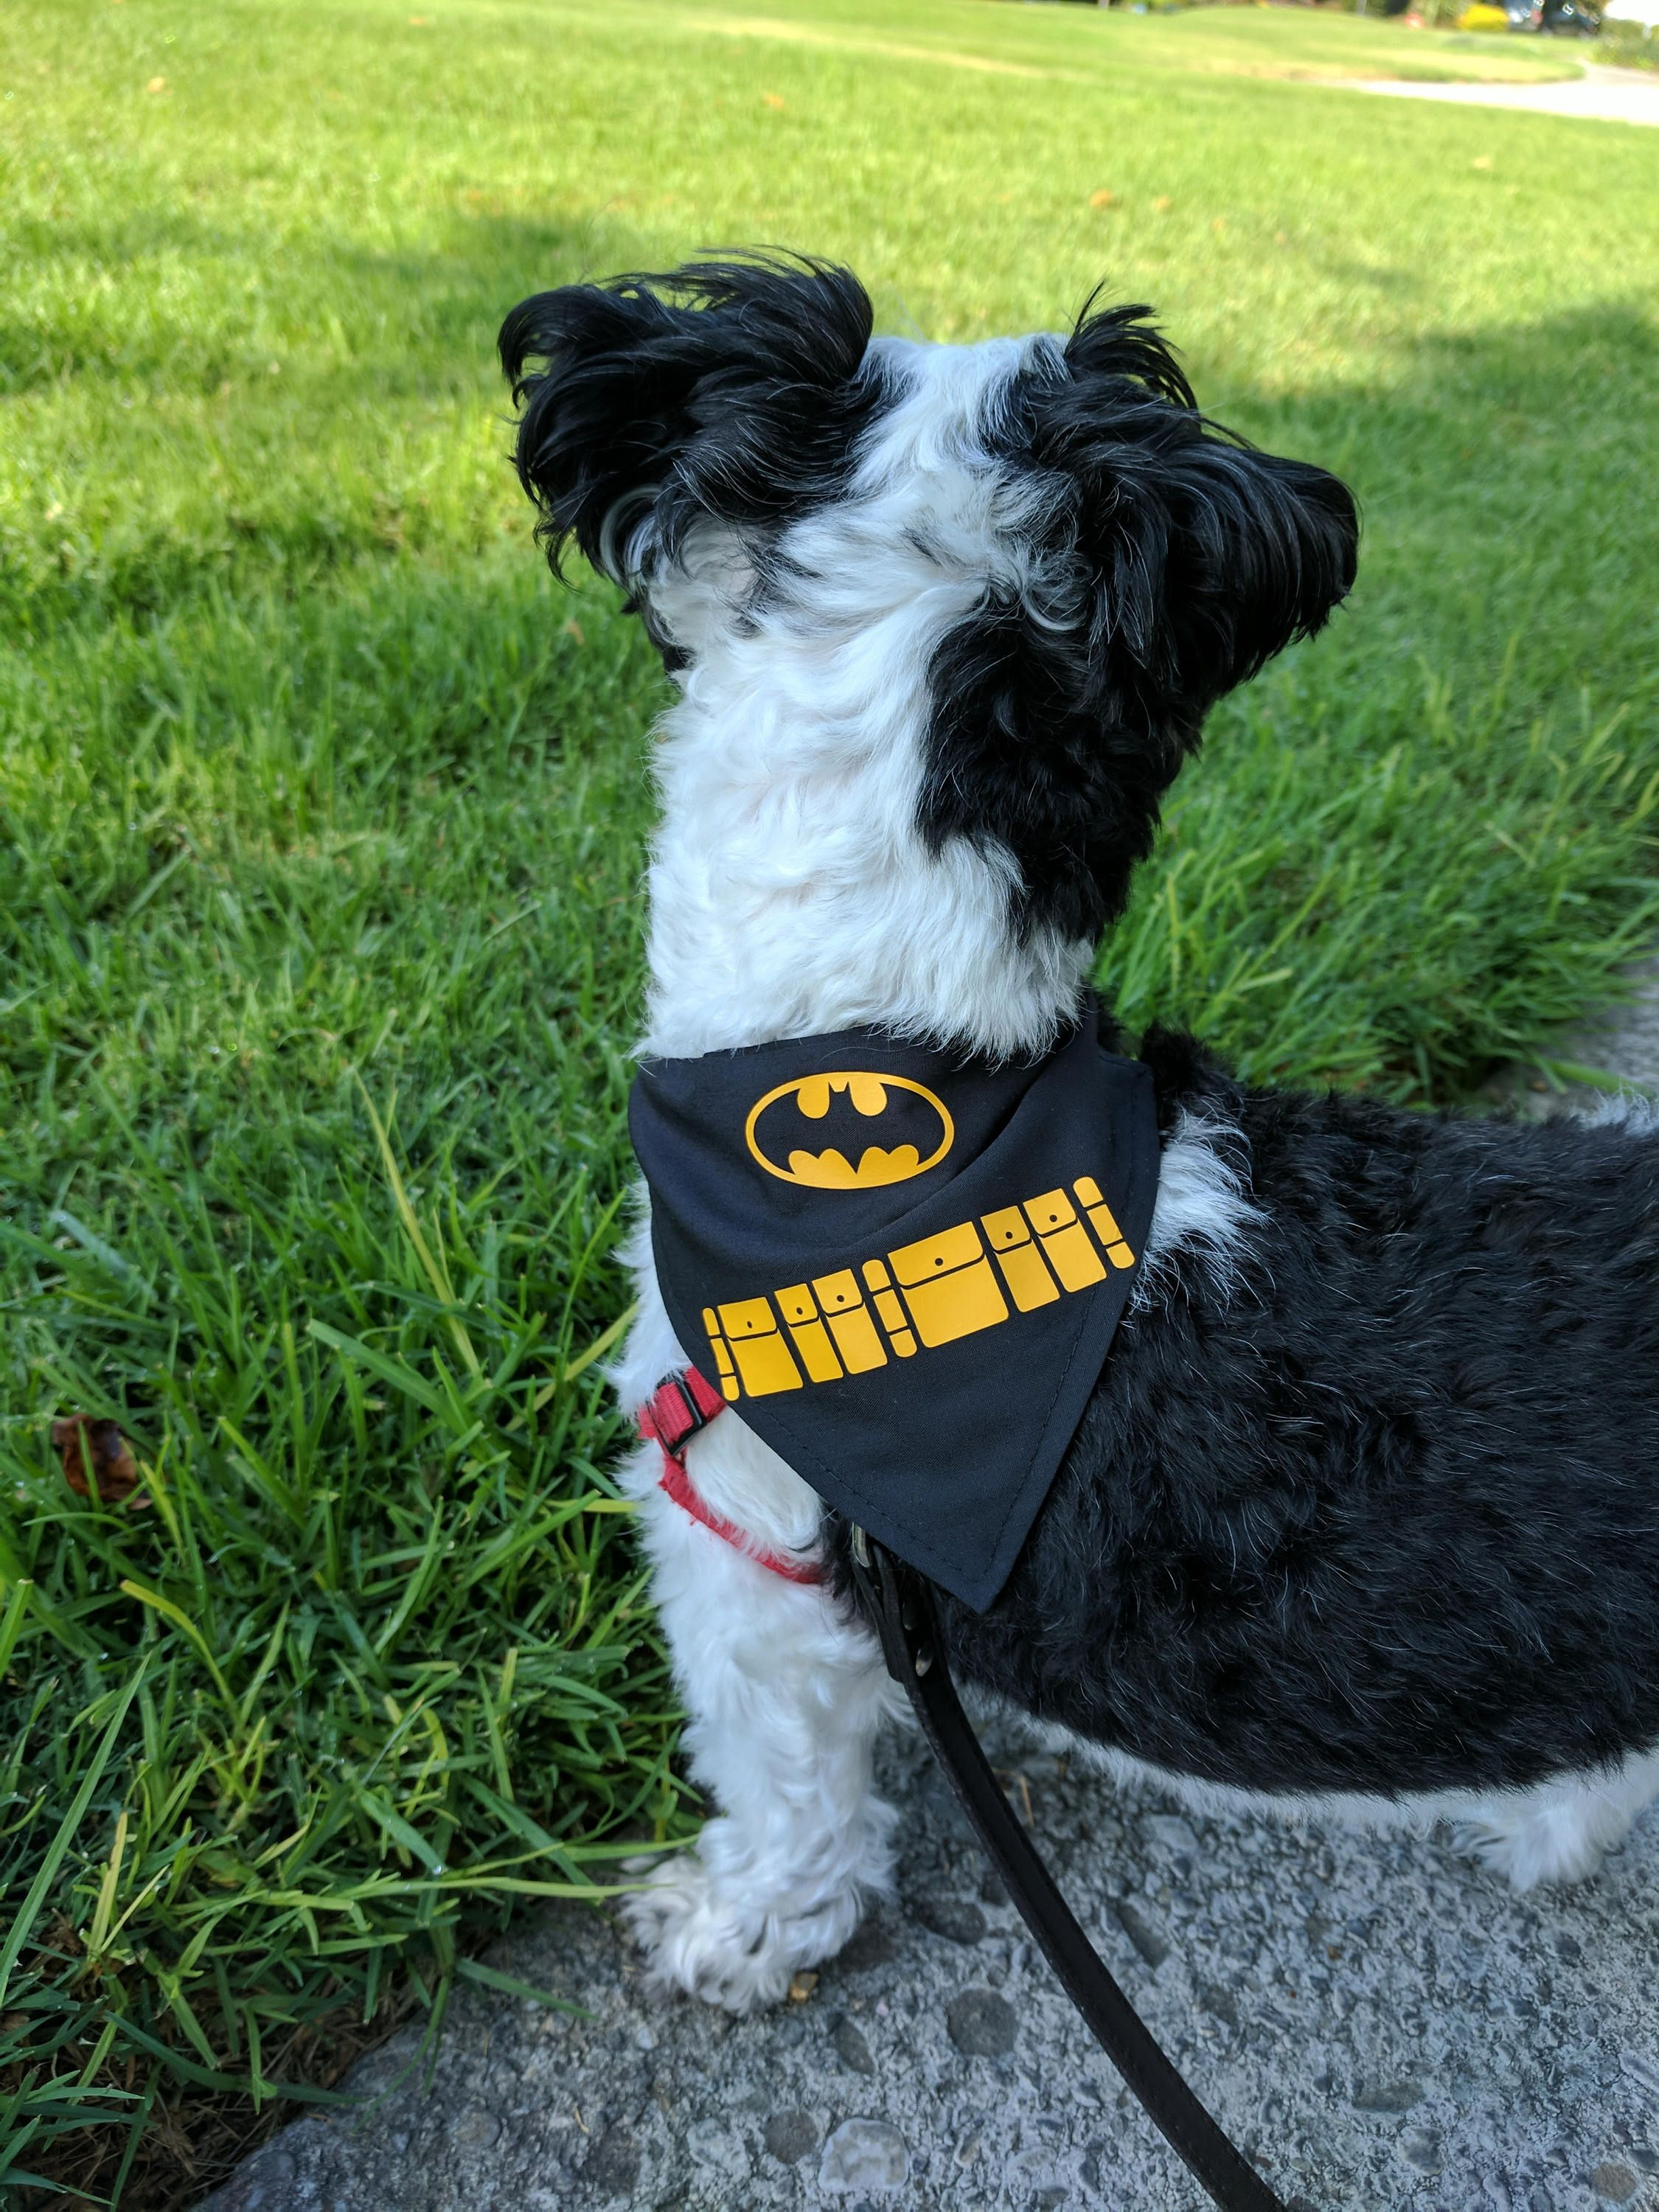 Pin by The Pawfit on Store Pet clothes, Batman inspired